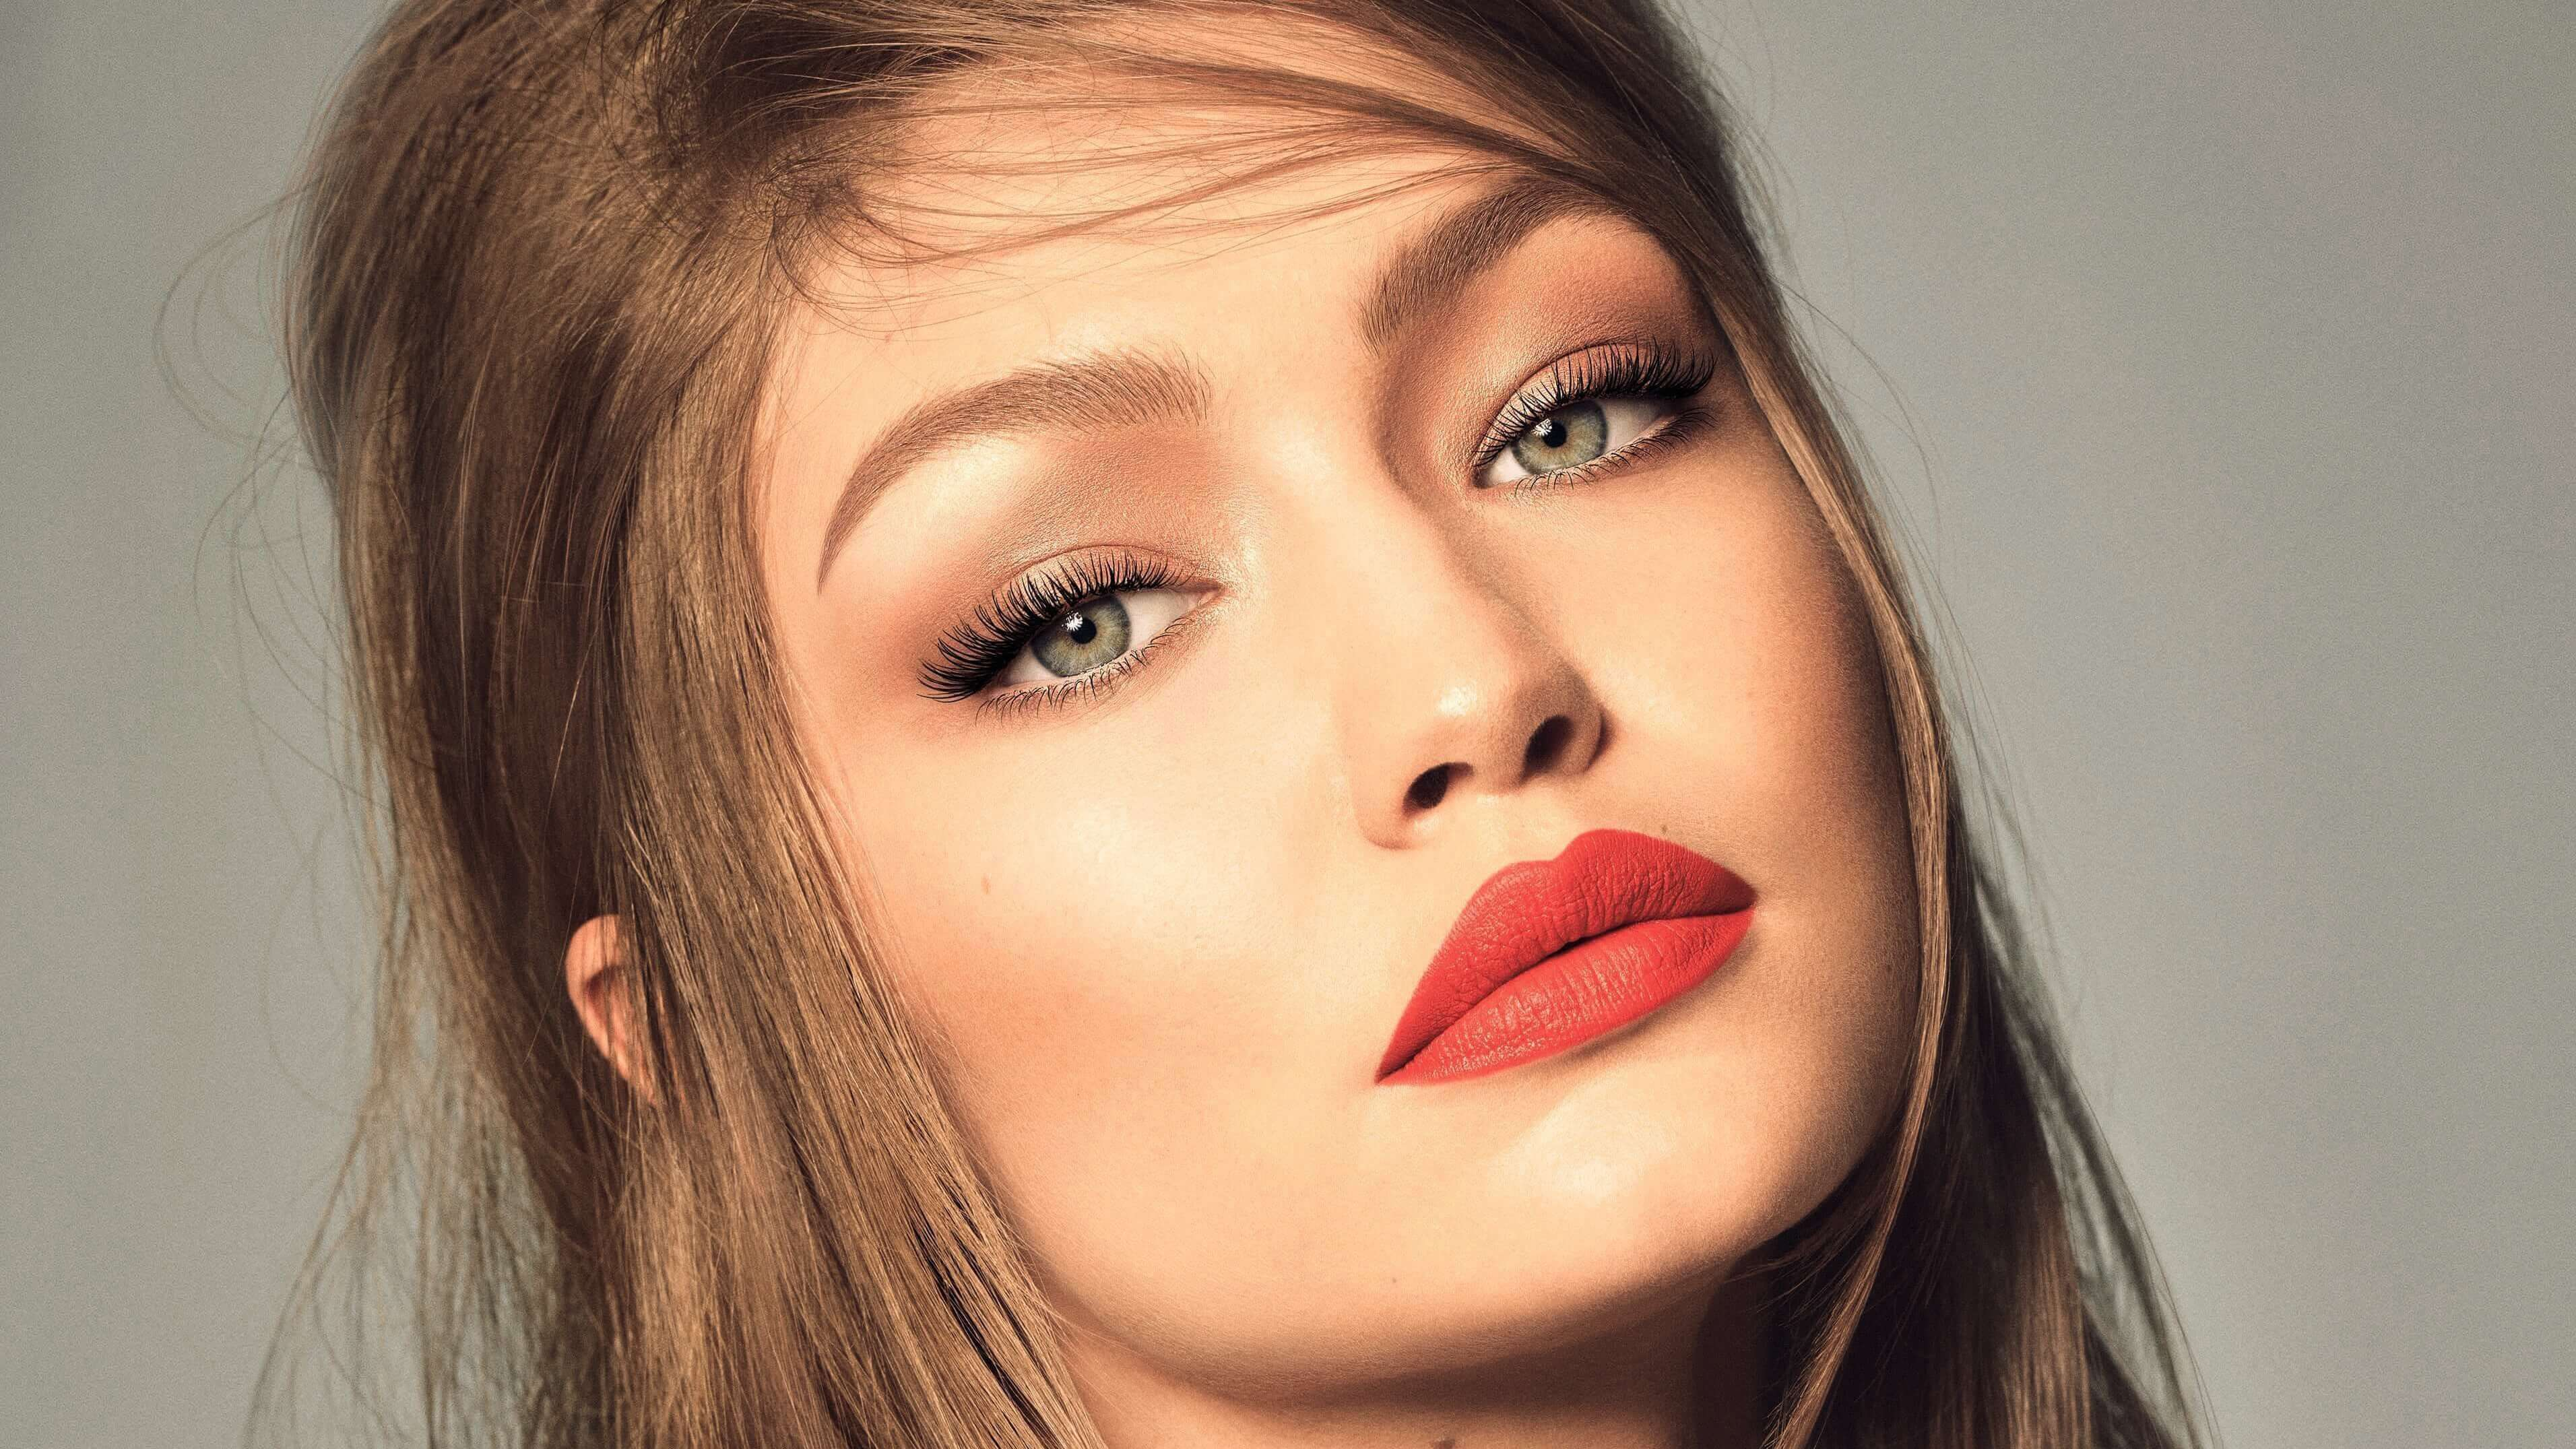 gigi hadid cute model hot hd wallpaper background 2278